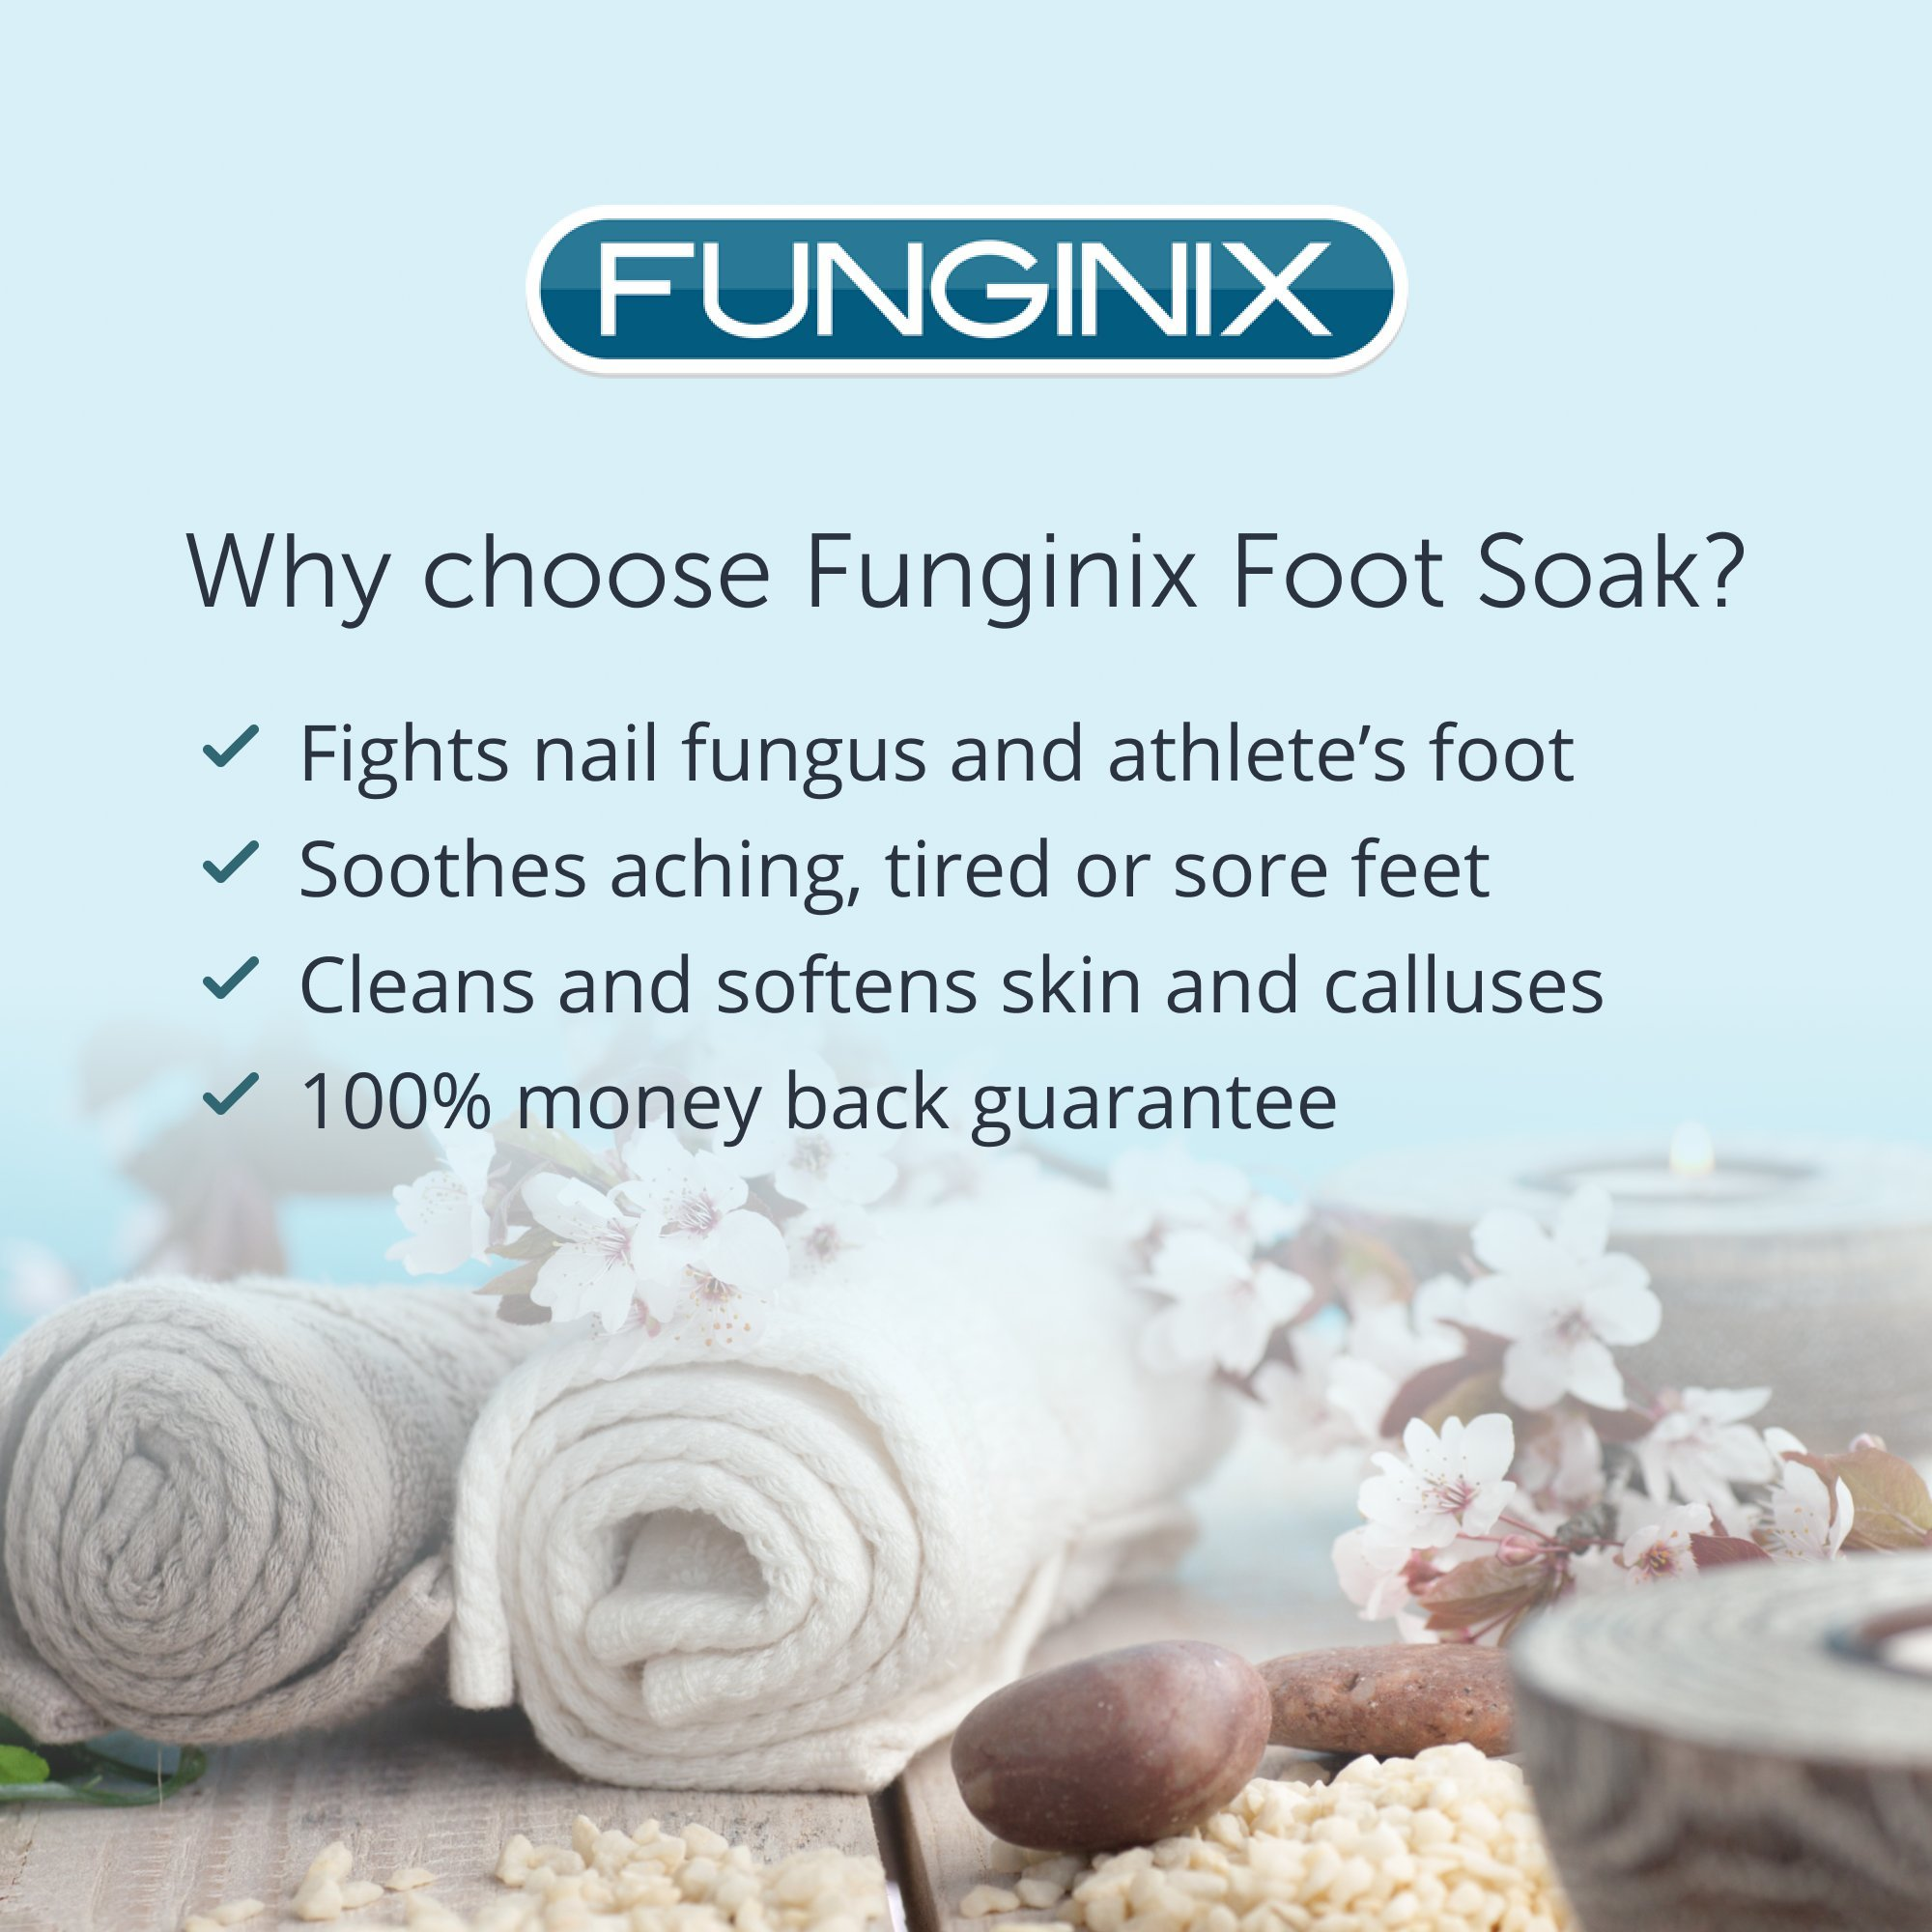 Funginix Premium Anti Fungal Foot Soak Nail Fungus Treatment with Tea Tree Oil, Himalayan Sea Salt, and Essential Oils - Treats Toenail Fungus, Athletes Foot, and Foot Odor - Foot Care for Sore Feet by Funginix (Image #5)